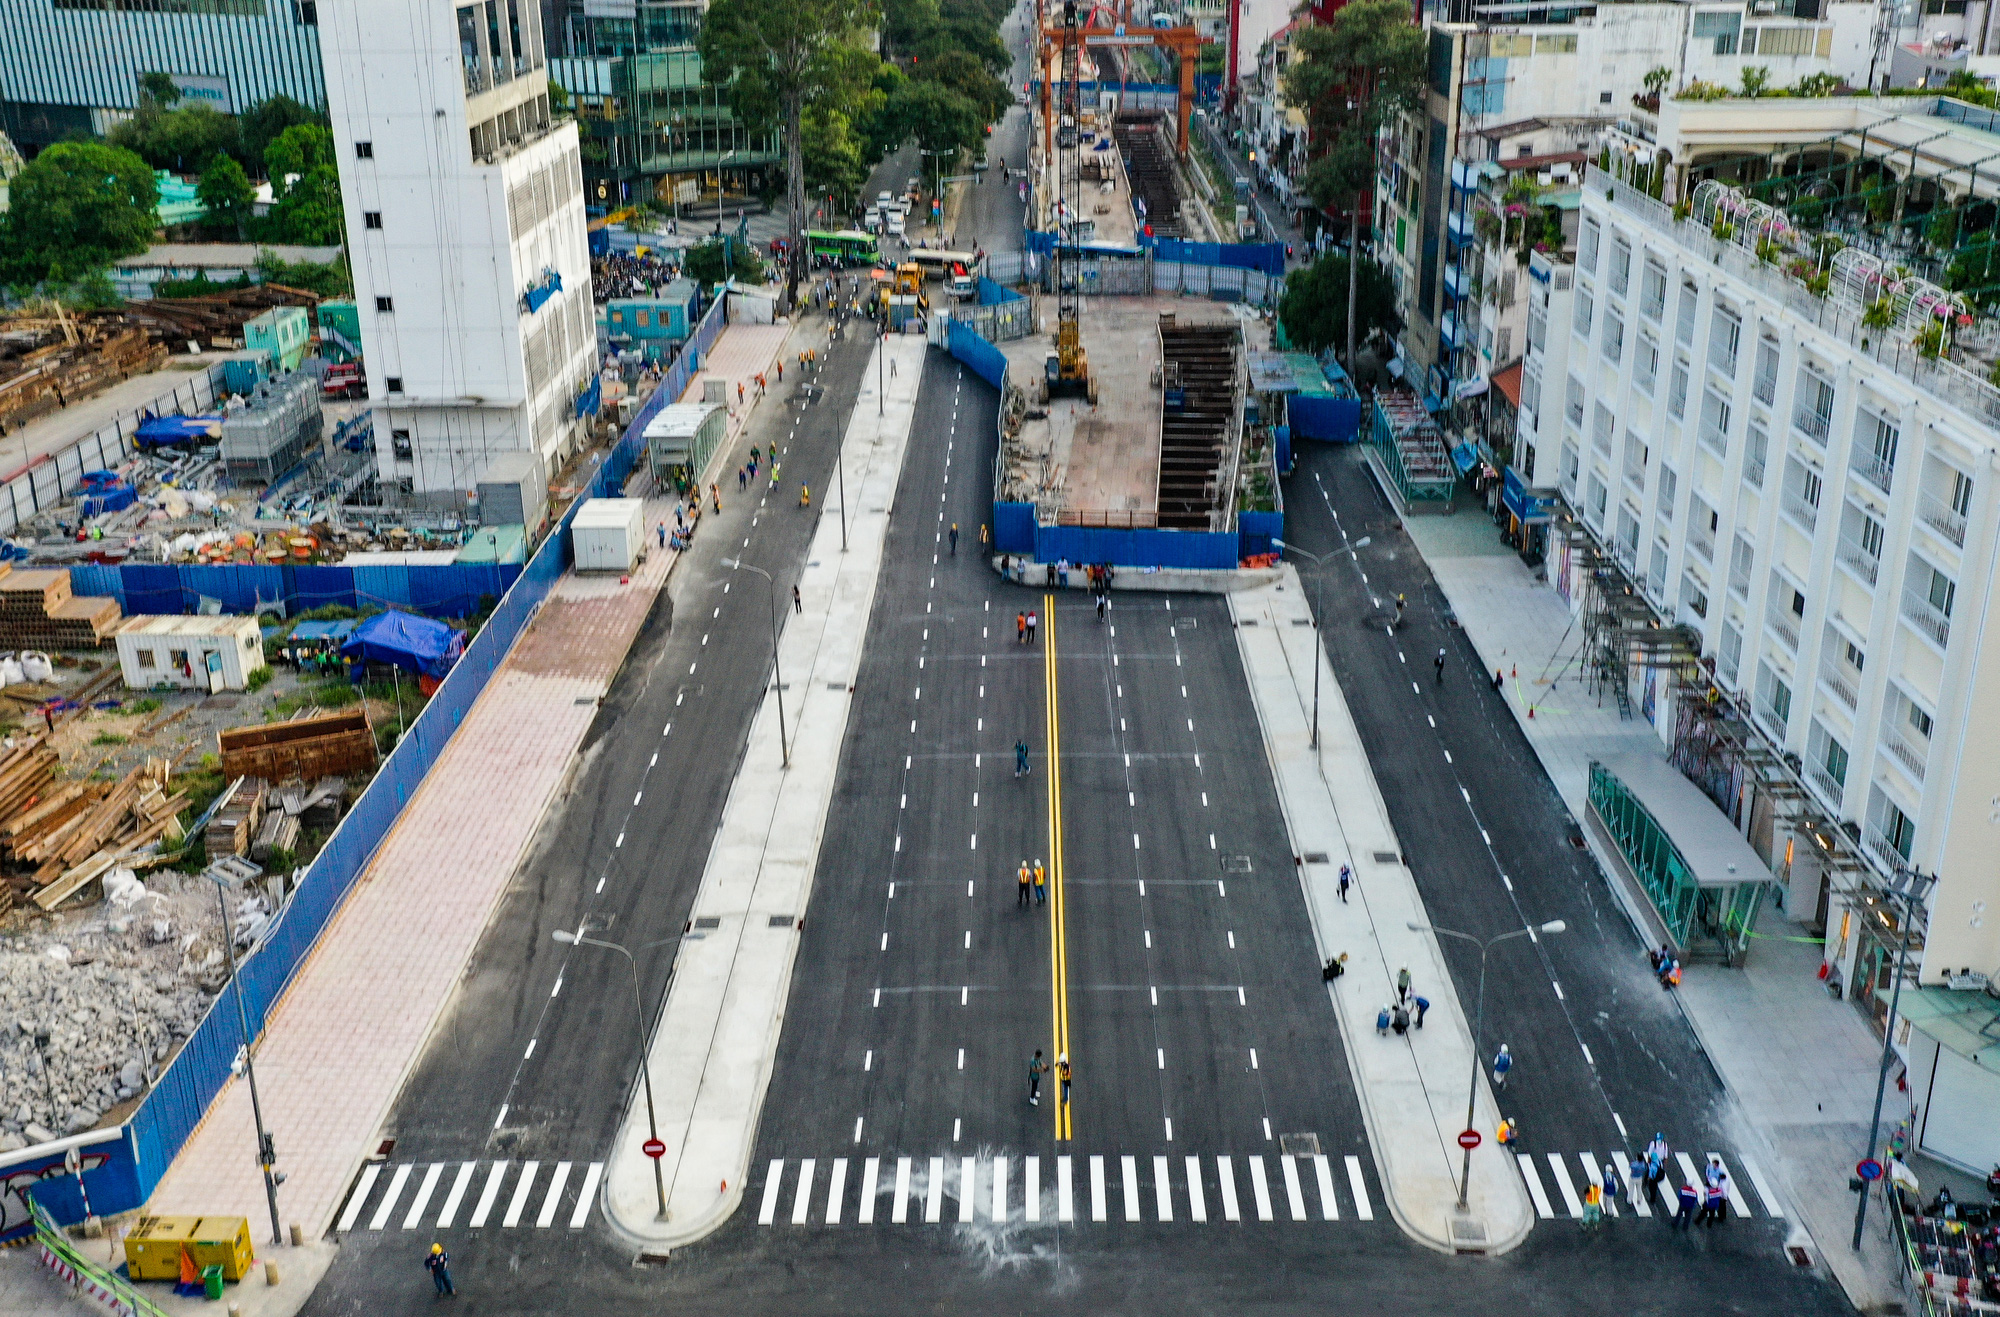 Construction barriers are removed from Le Loi Street in District 1, Ho Chi Minh City, April 28, 2021. Photo: Quang Dinh / Tuoi Tre